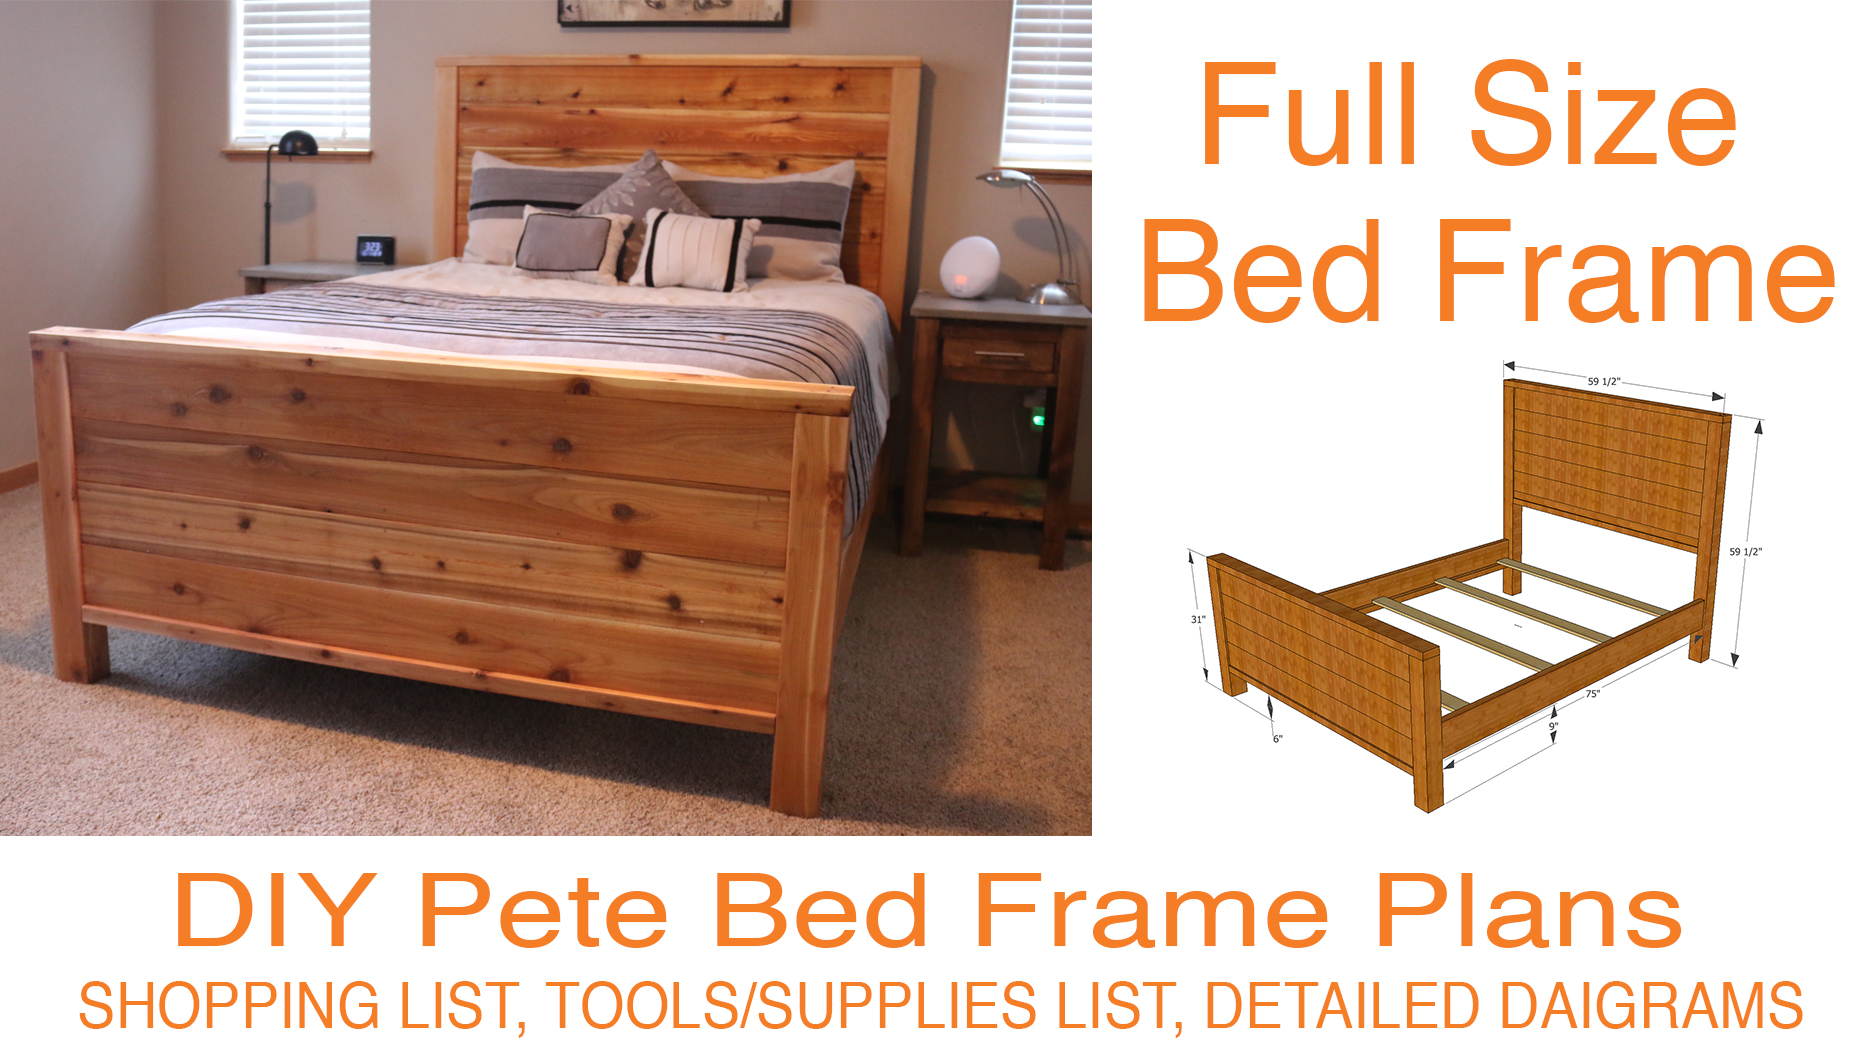 DIY Bed Frame Plans - How to Make a bed frame with DIY Pete